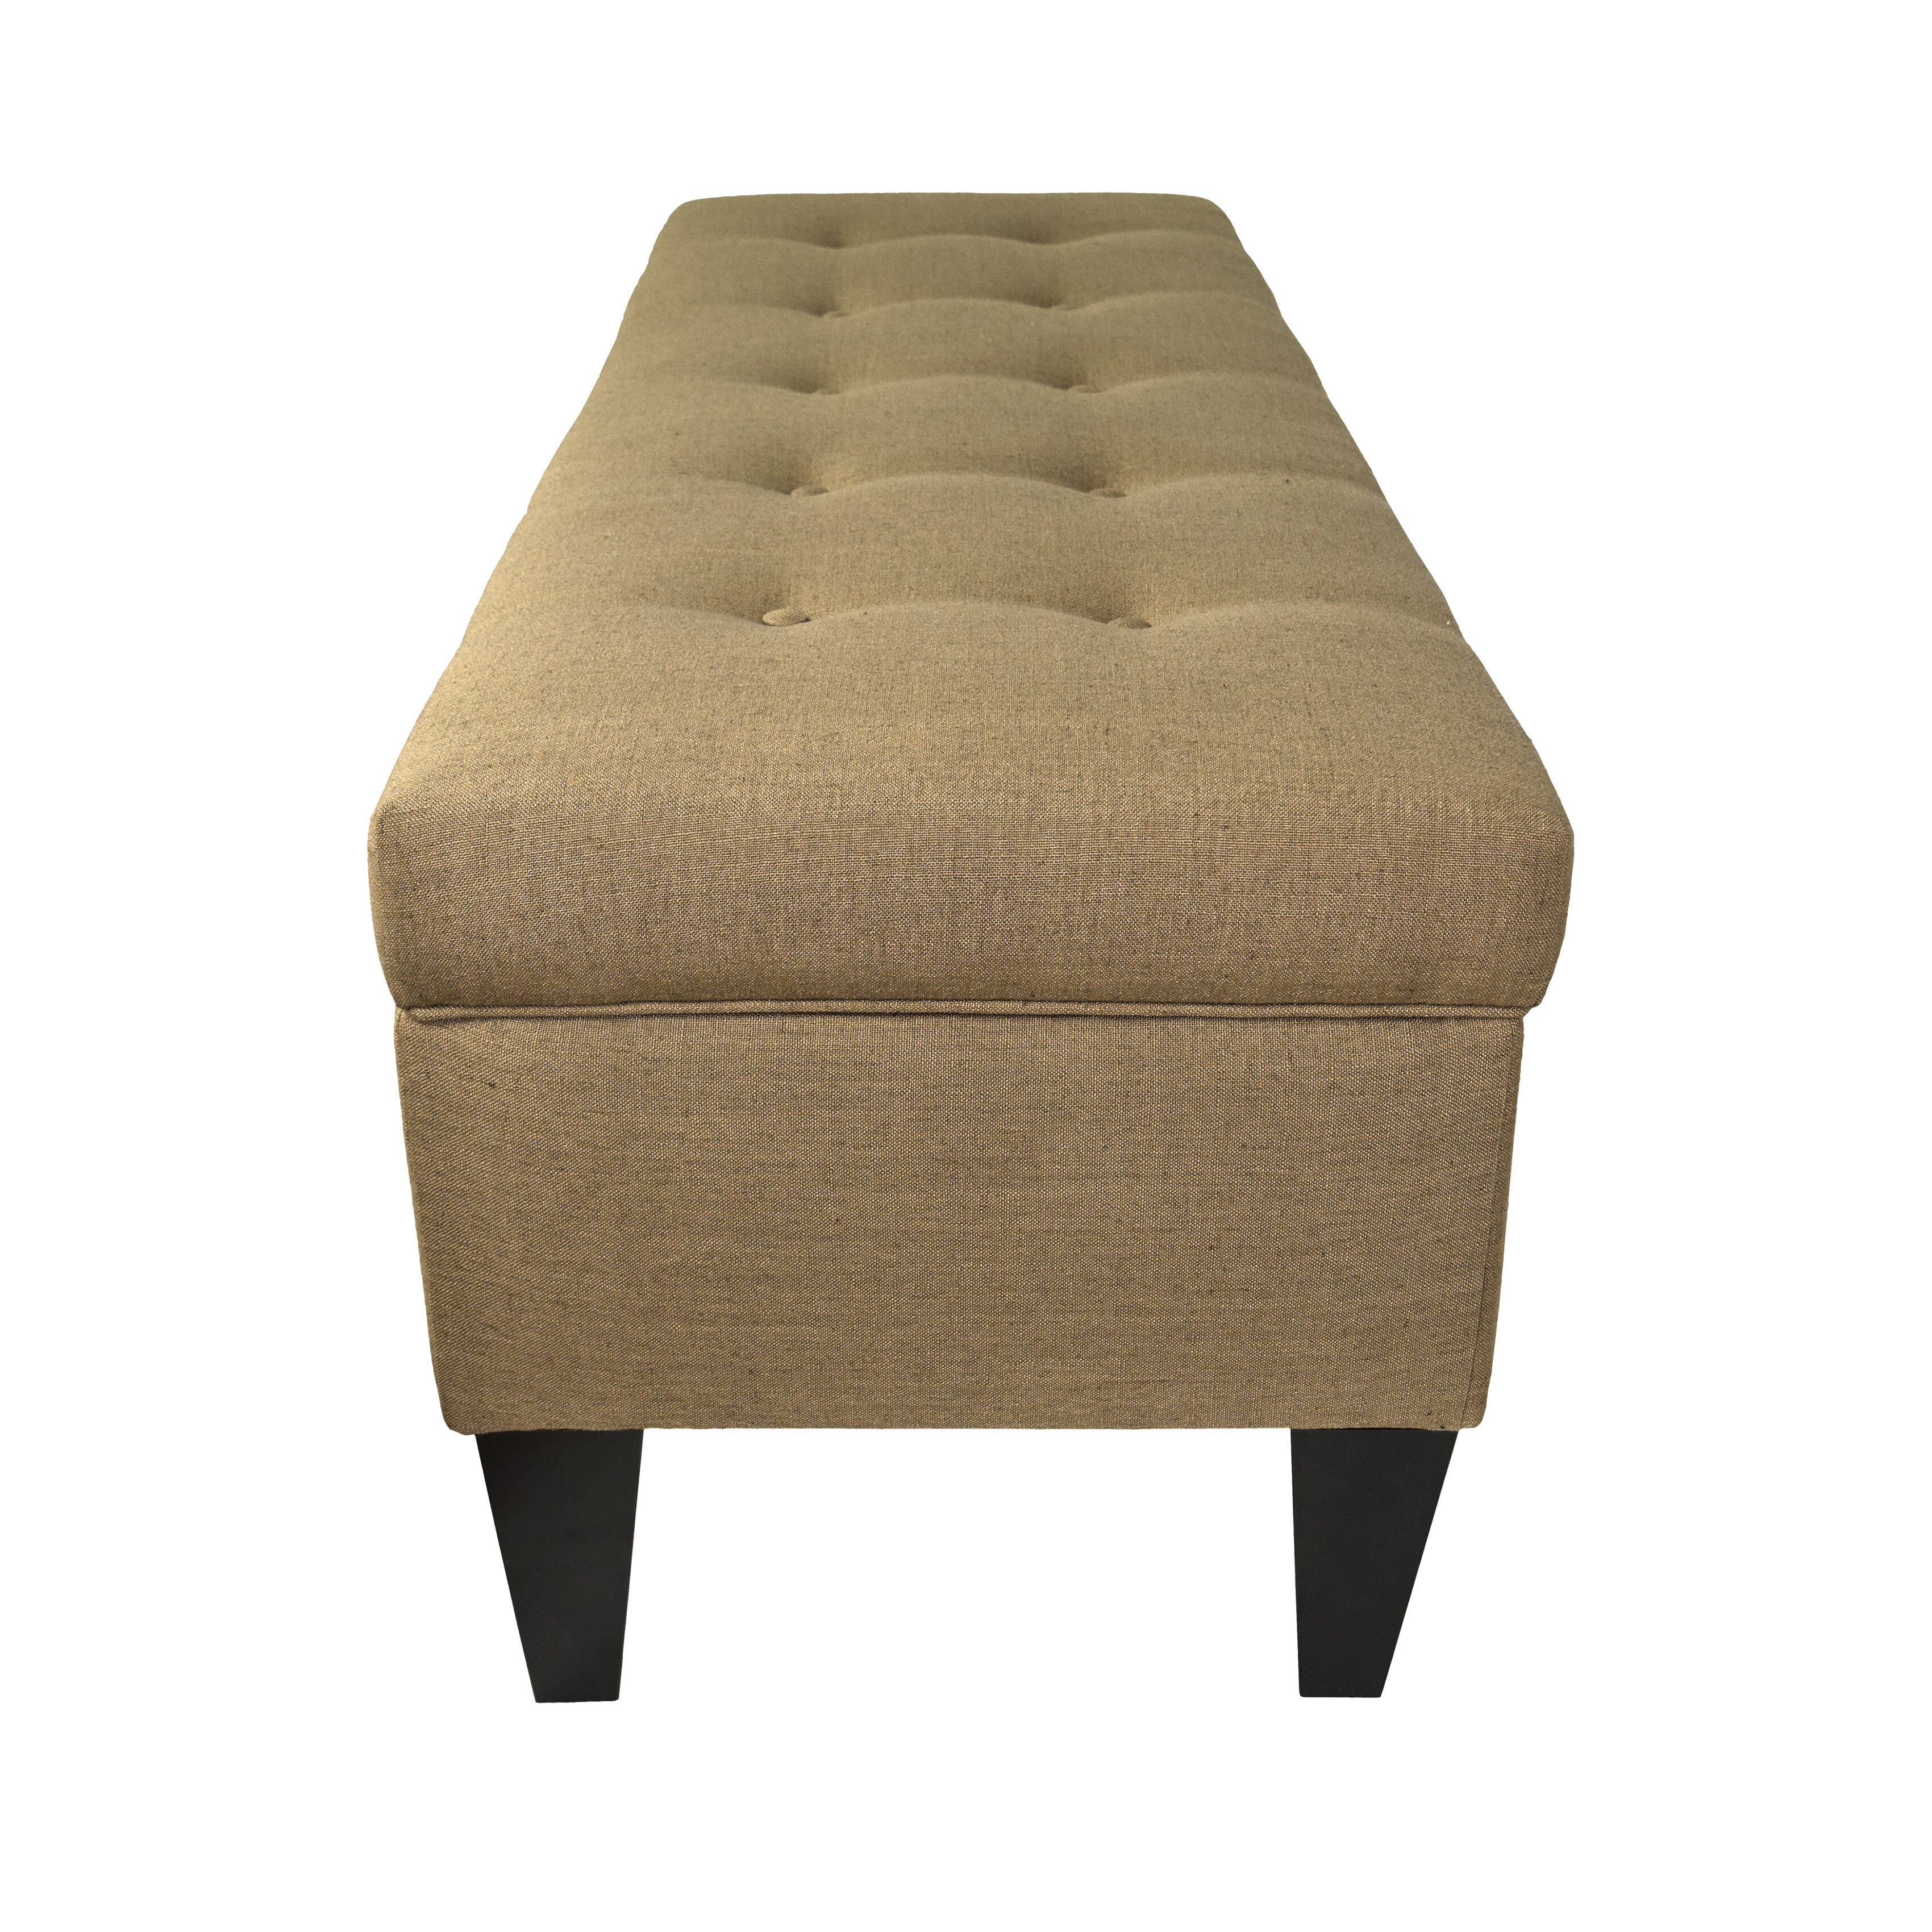 MJLFurniture Allure Wood Storage Bedroom Bench Wayfair. Full resolution  image, nominally Width 3400 Height 3400 pixels, image with #8E723D.